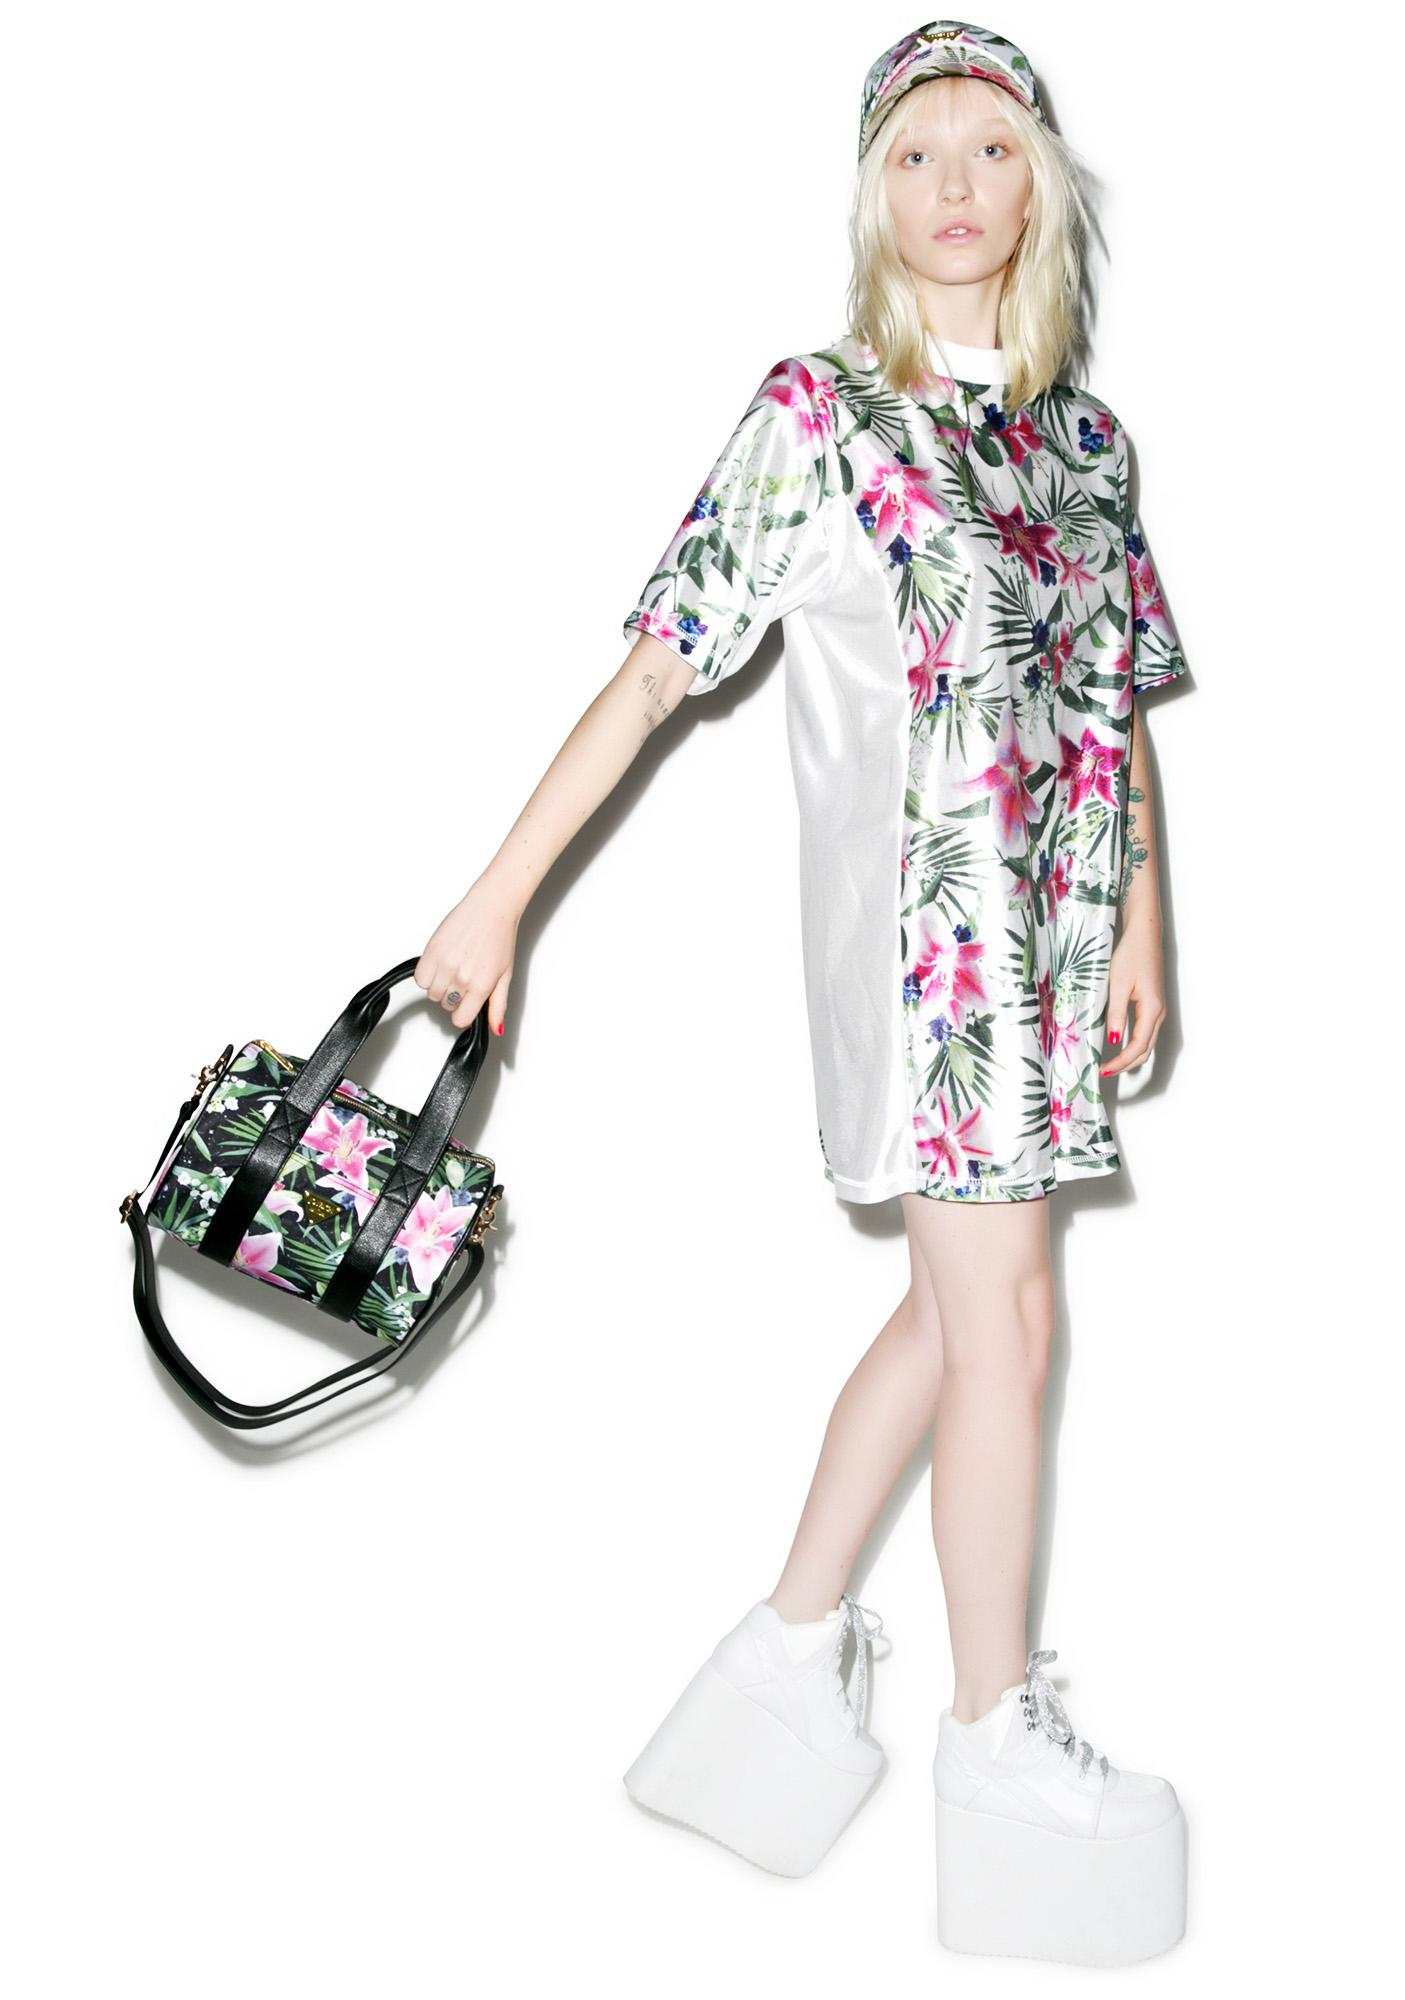 Joyrich Optical Garden Shoulder Boston Bag